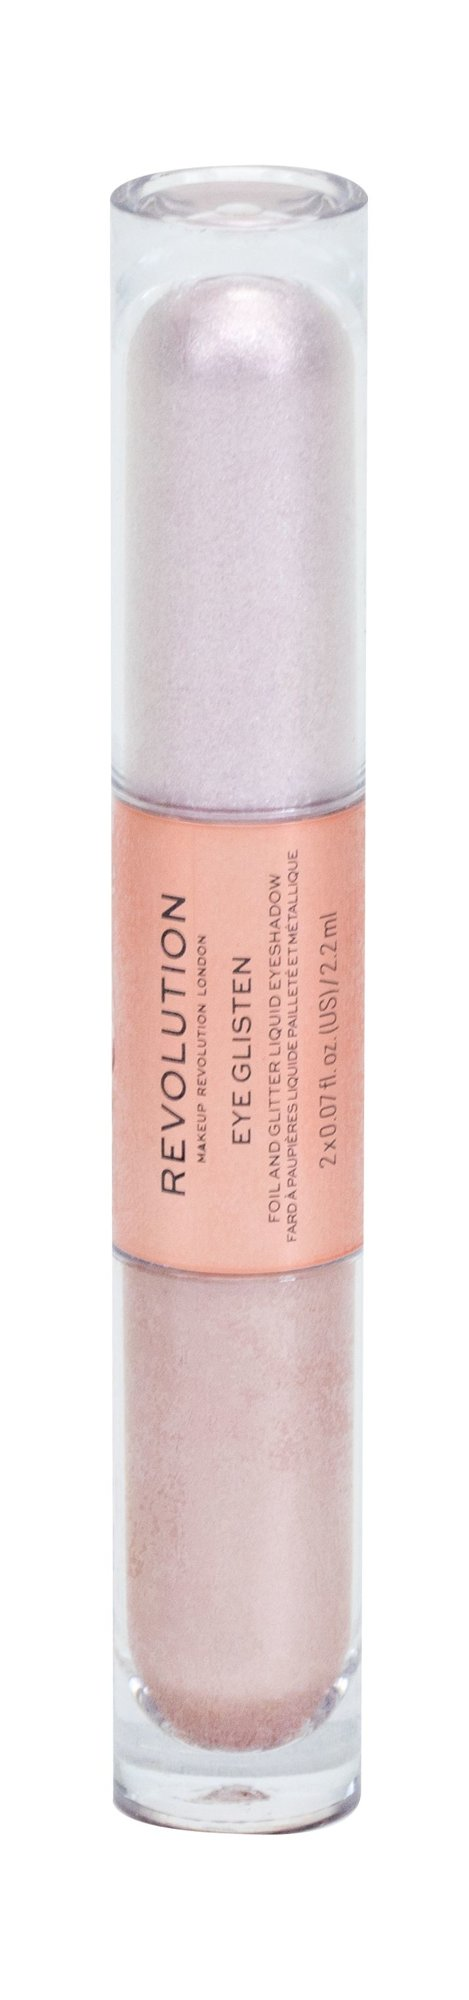 Makeup Revolution London Eye Glisten  (Oční stín, W, 4,4 ml)